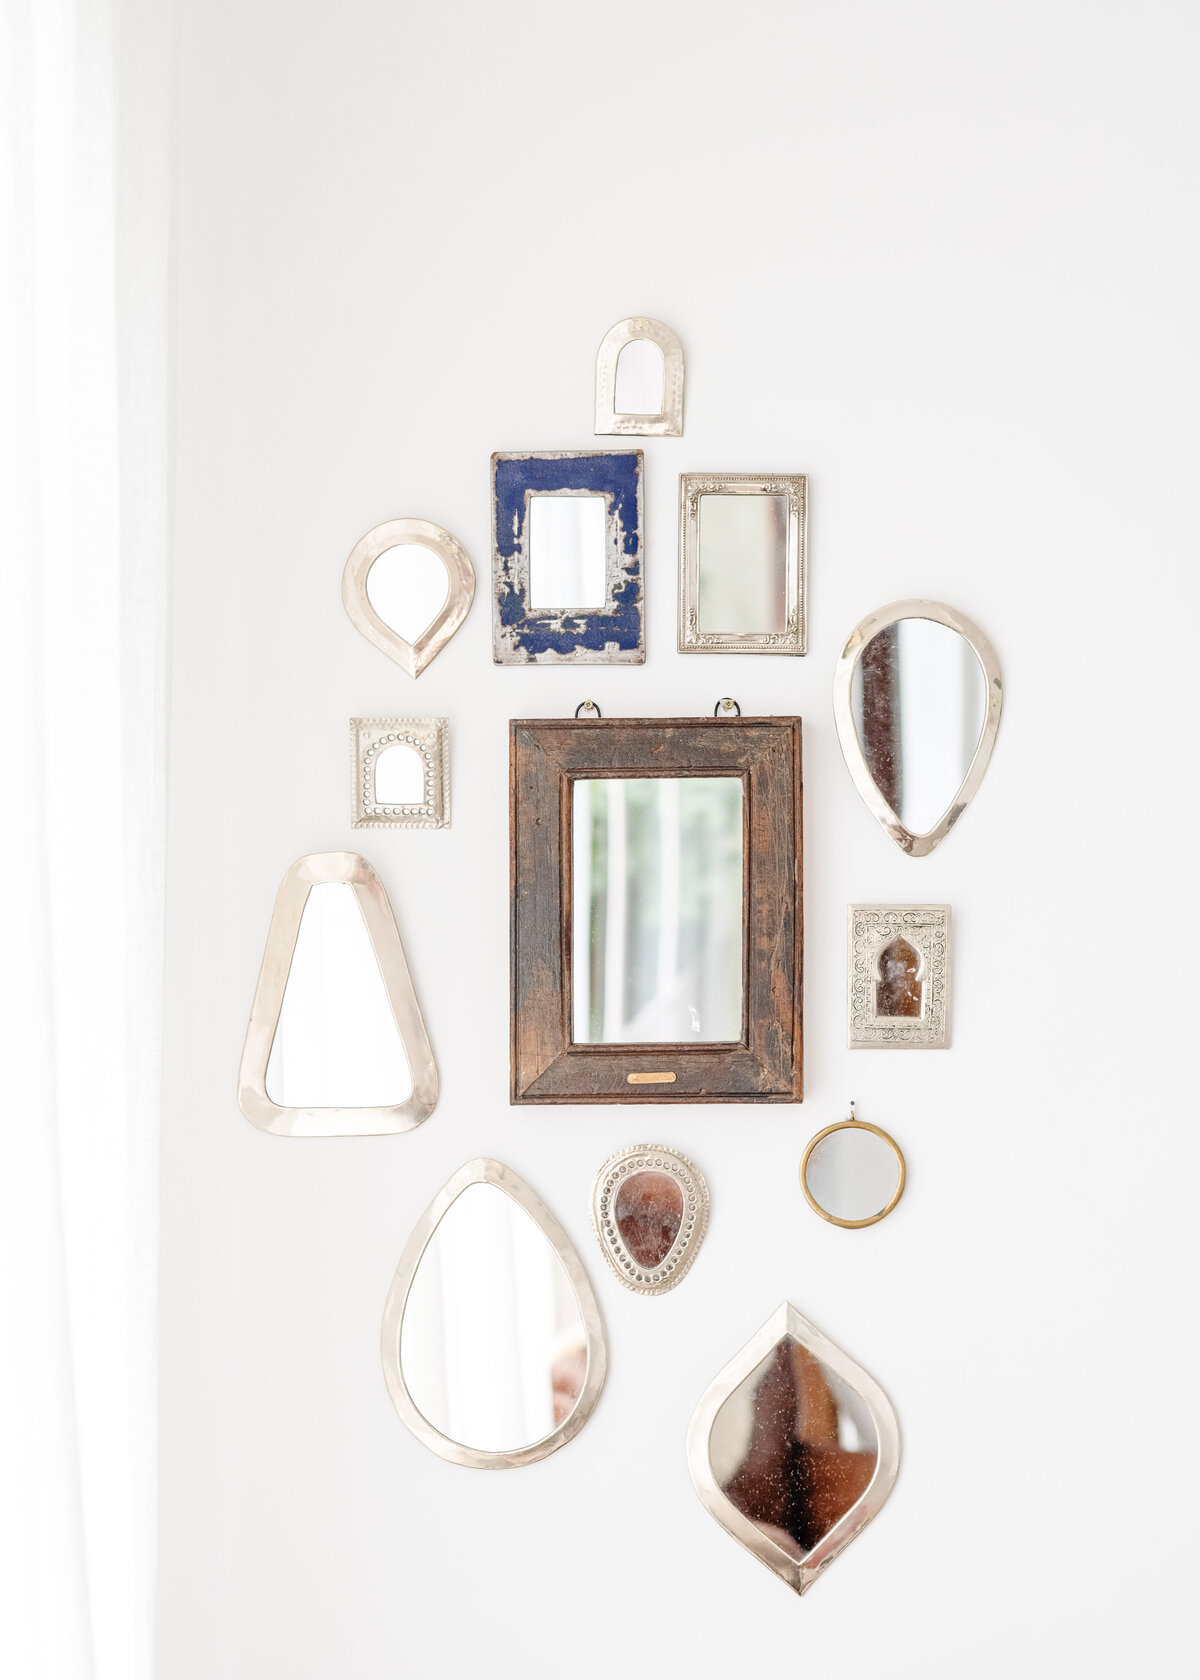 A selection of bohemian mirrors hang on a white wall as interior decor.